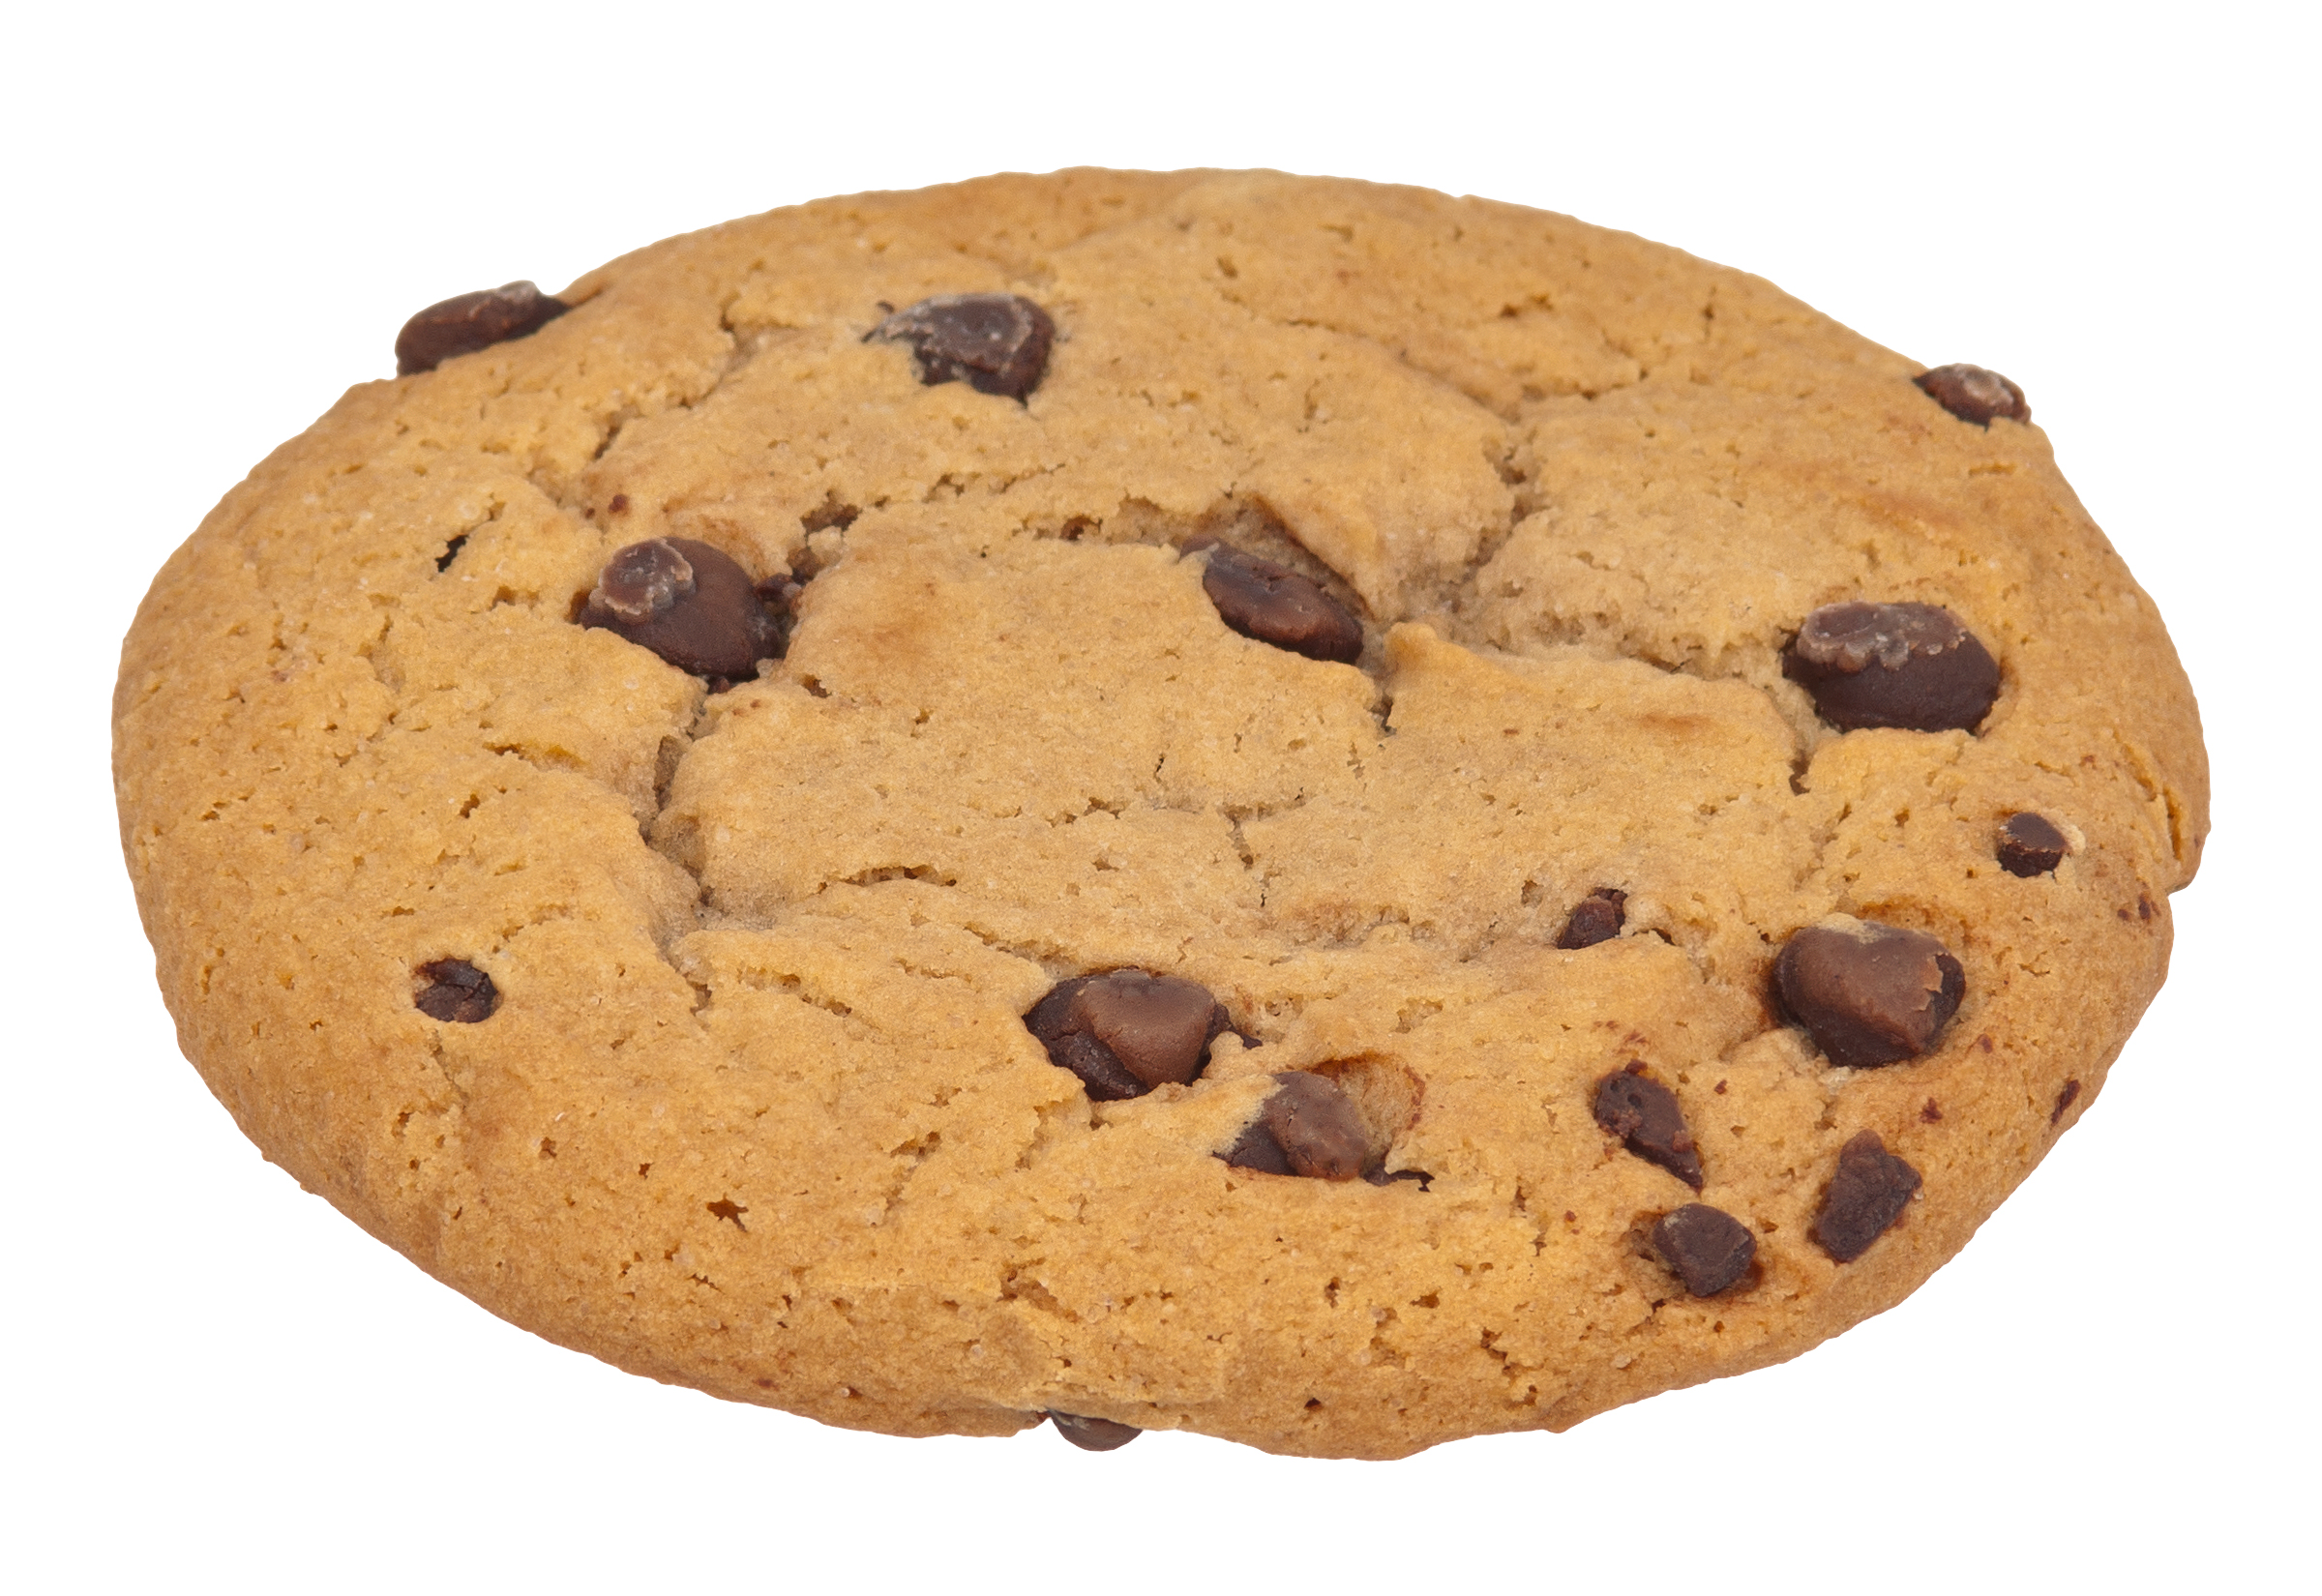 Chocolate Chip Cookie Png Chocolate chip?